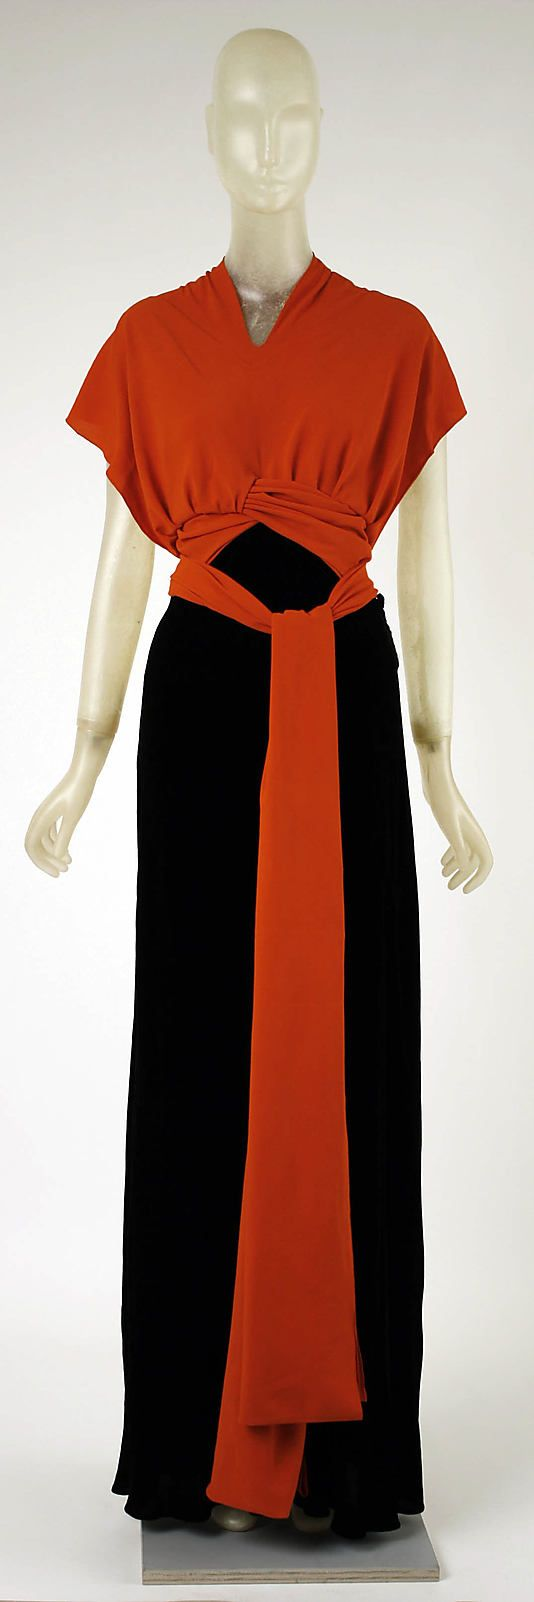 1933 to 37 Madeleine Vionnet Evening dress Metropolitan Museum of Art,NY. See more vintage fashion museum collections by decade at http://www.vintagefashionandart.com/dresses